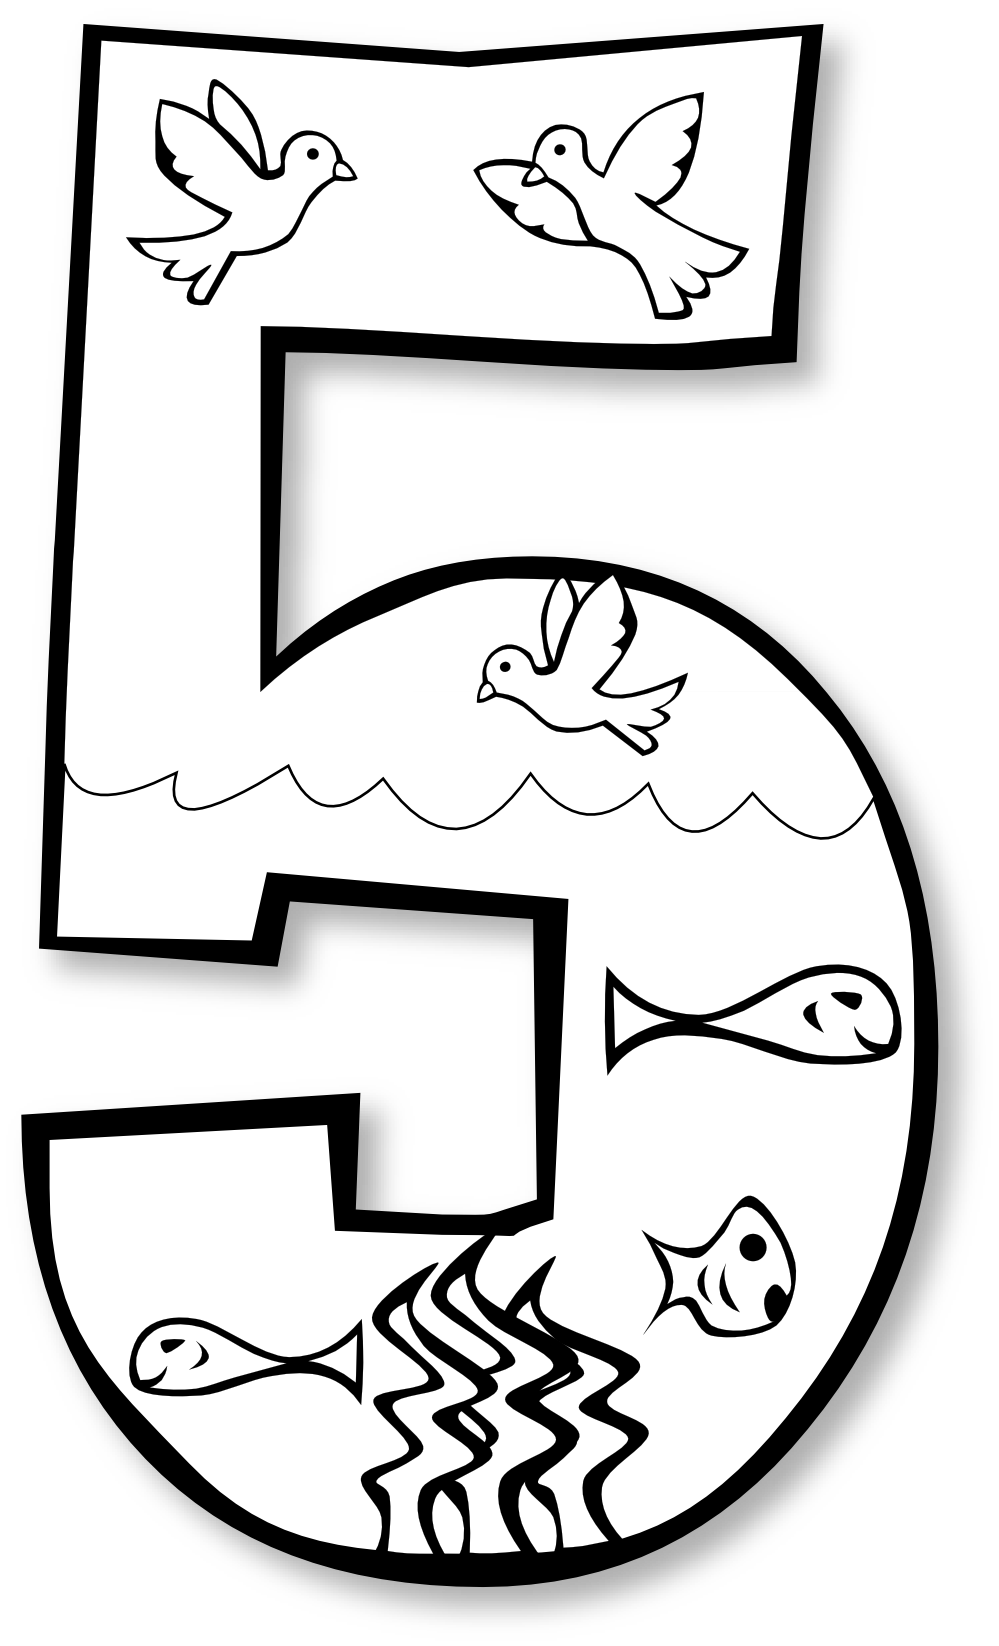 Cool Creation Day 5 Number Ge 2 Black White Line Art